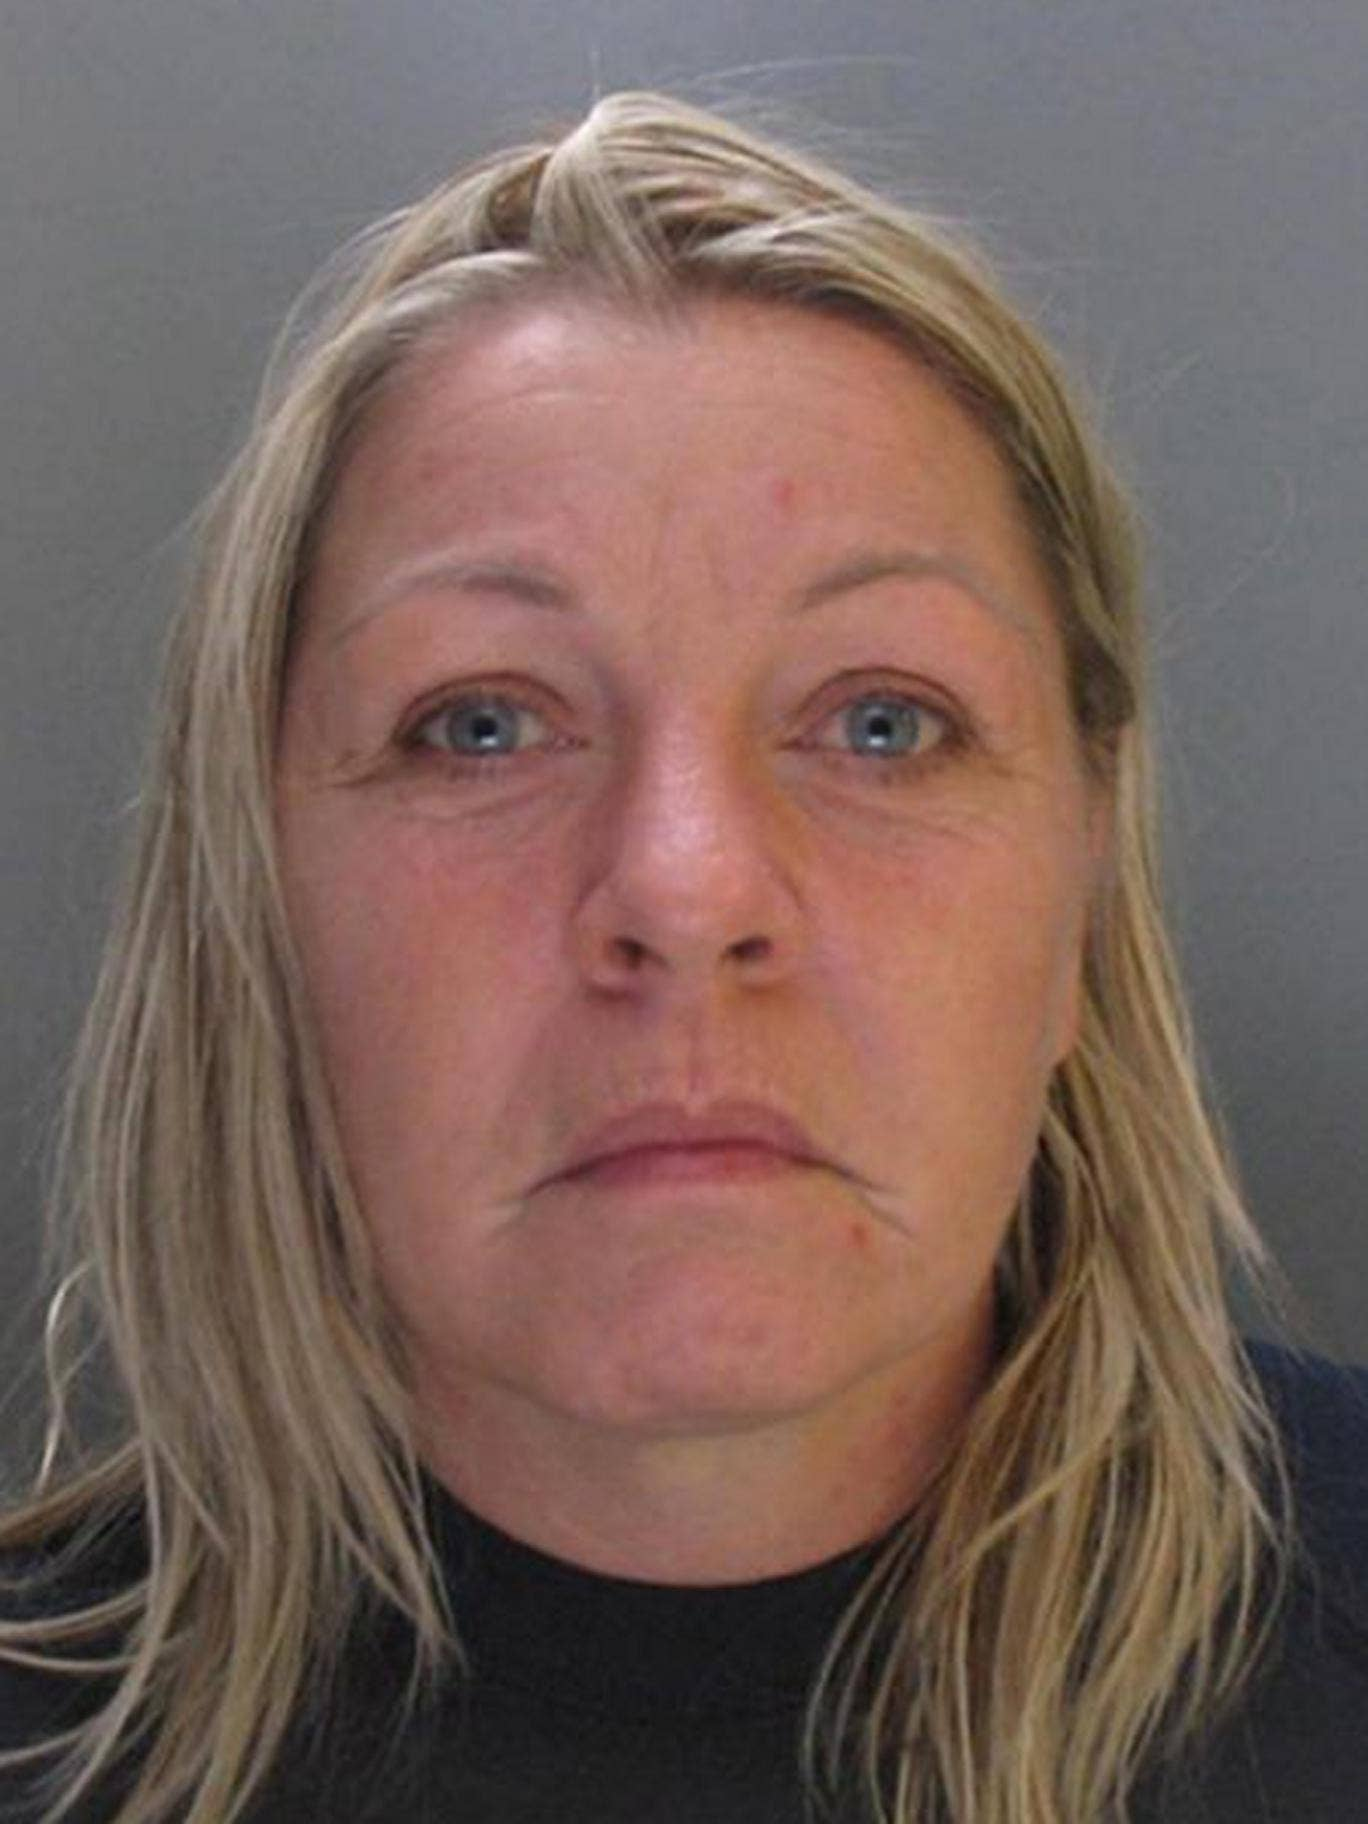 43-year-old Melanie Smith was sentenced to a minimum of 30 years in prison after being found guilty of murdering five people